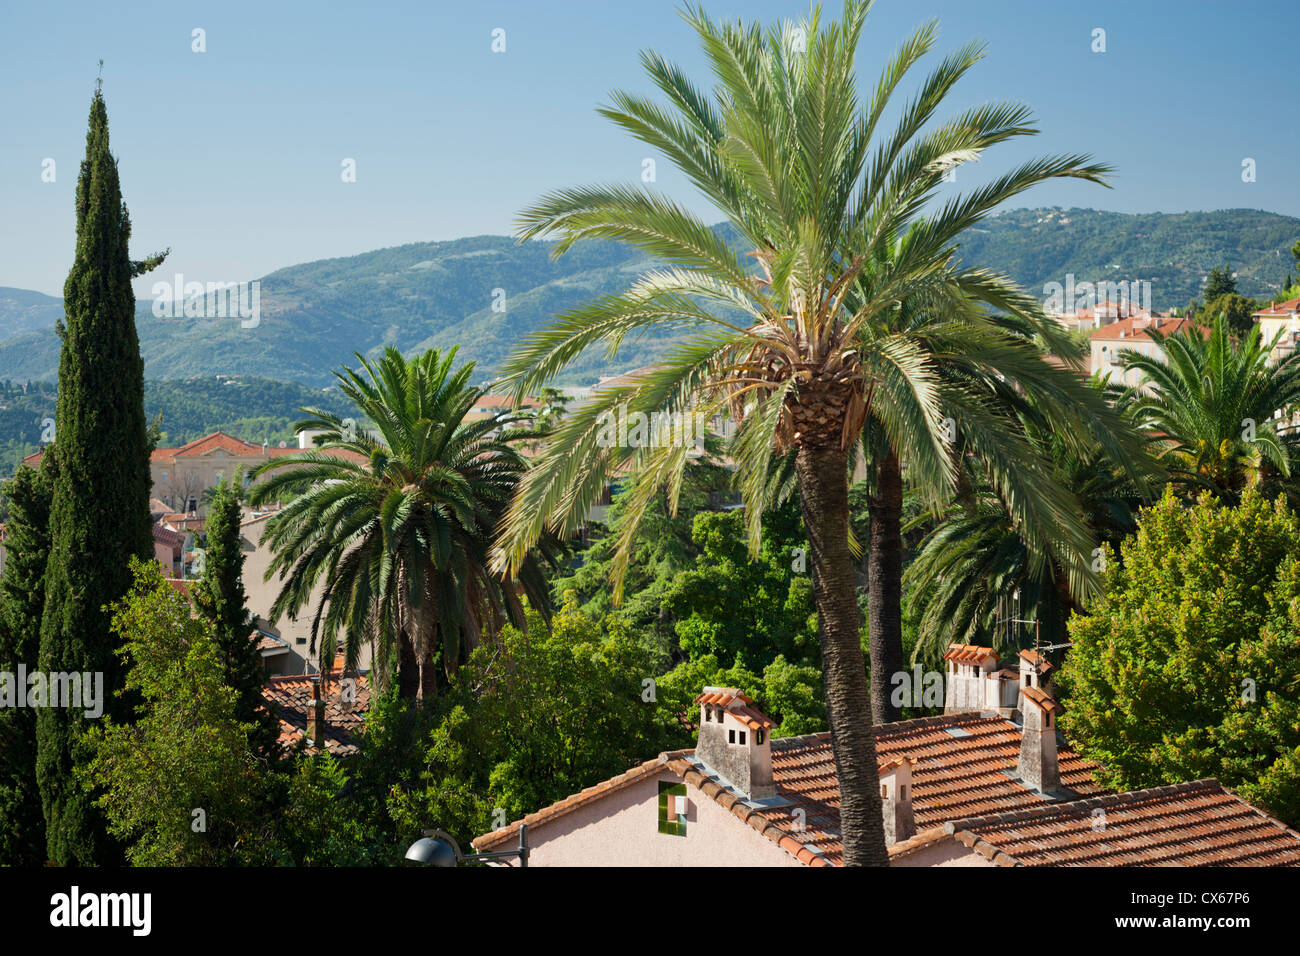 Town of Grasse in Southern France famous for its perfume industry. - Stock Image